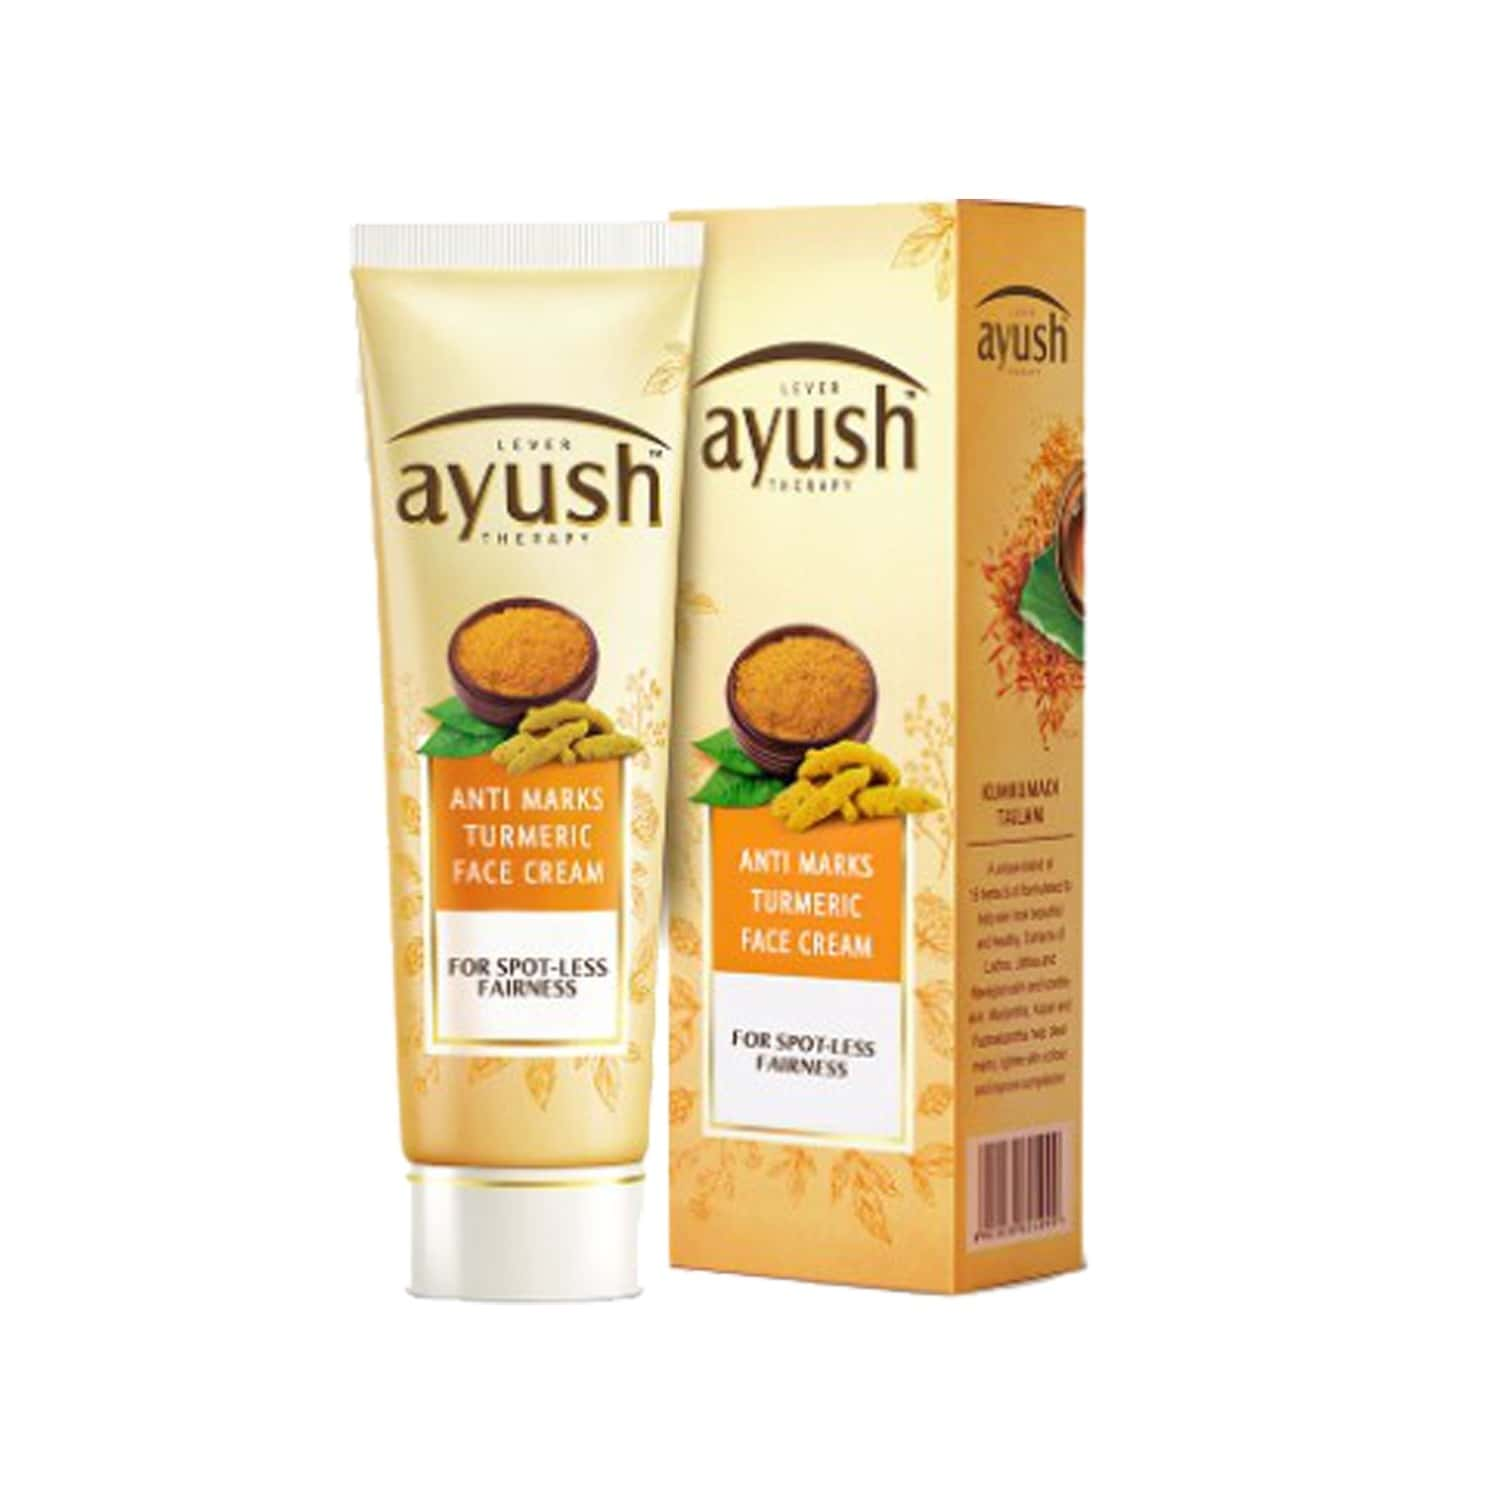 Lever Ayush Face Cream, Anti Marks Turmeric 25 Gm